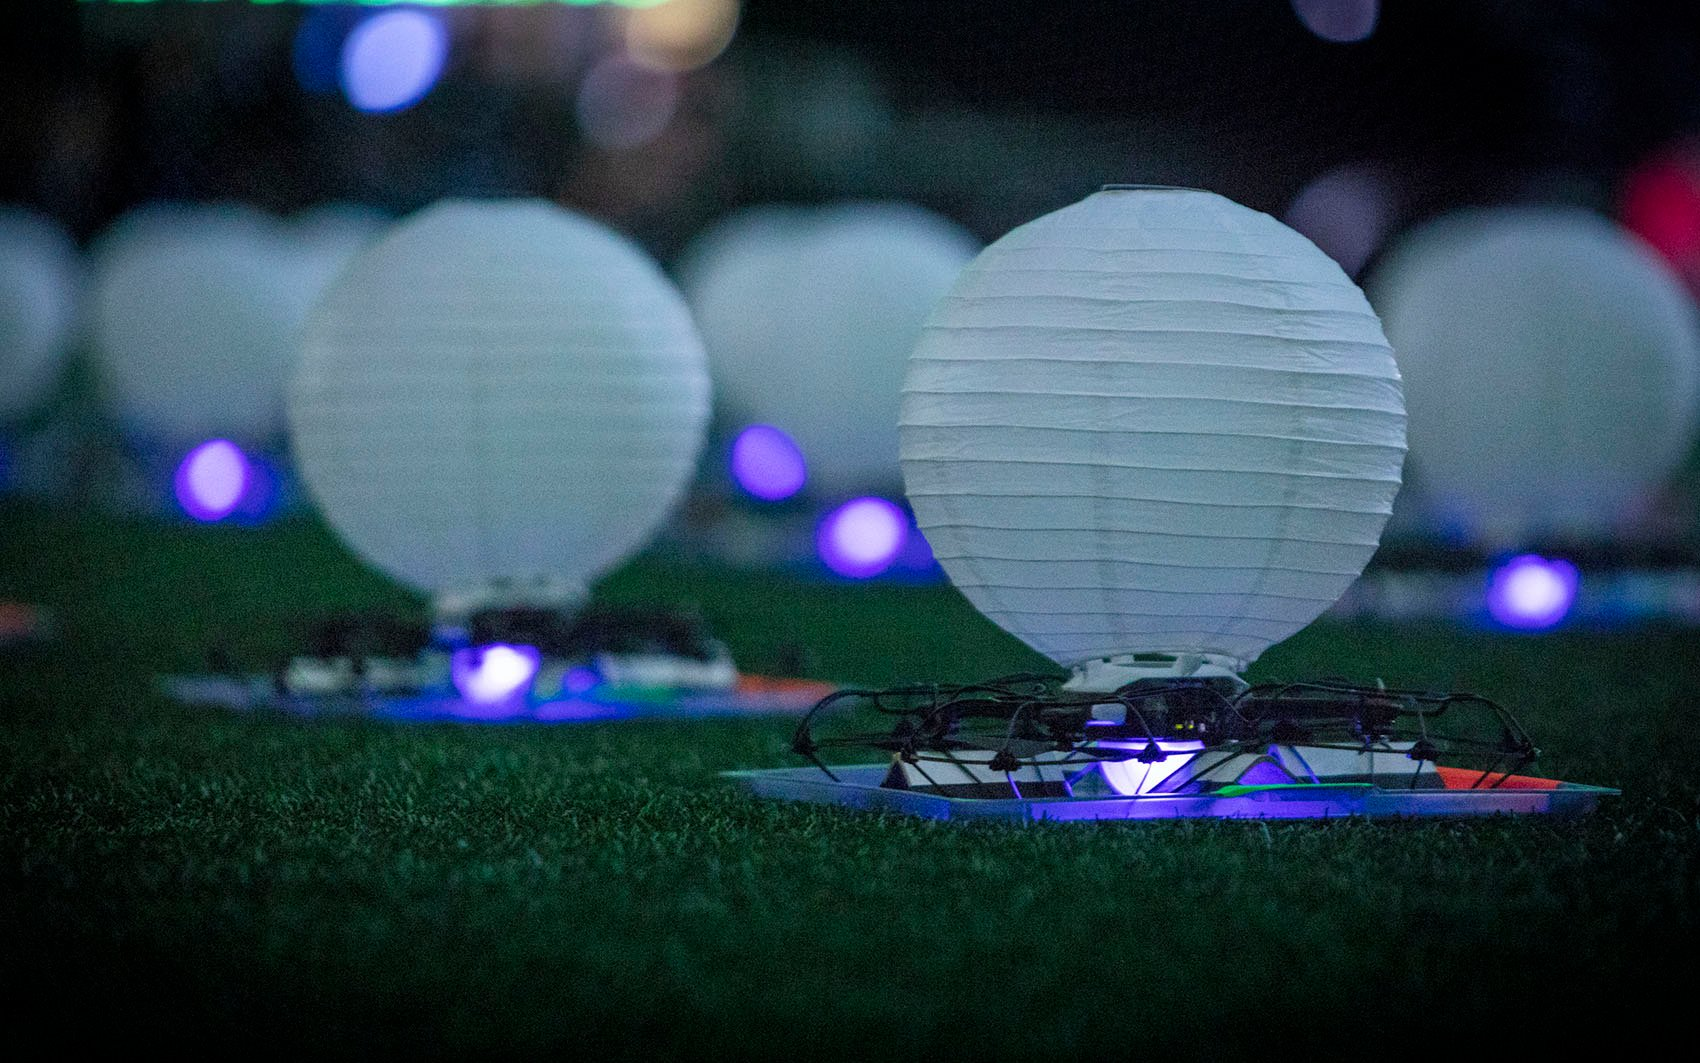 Intel Drones at Super Bowl LIII Halftime Show